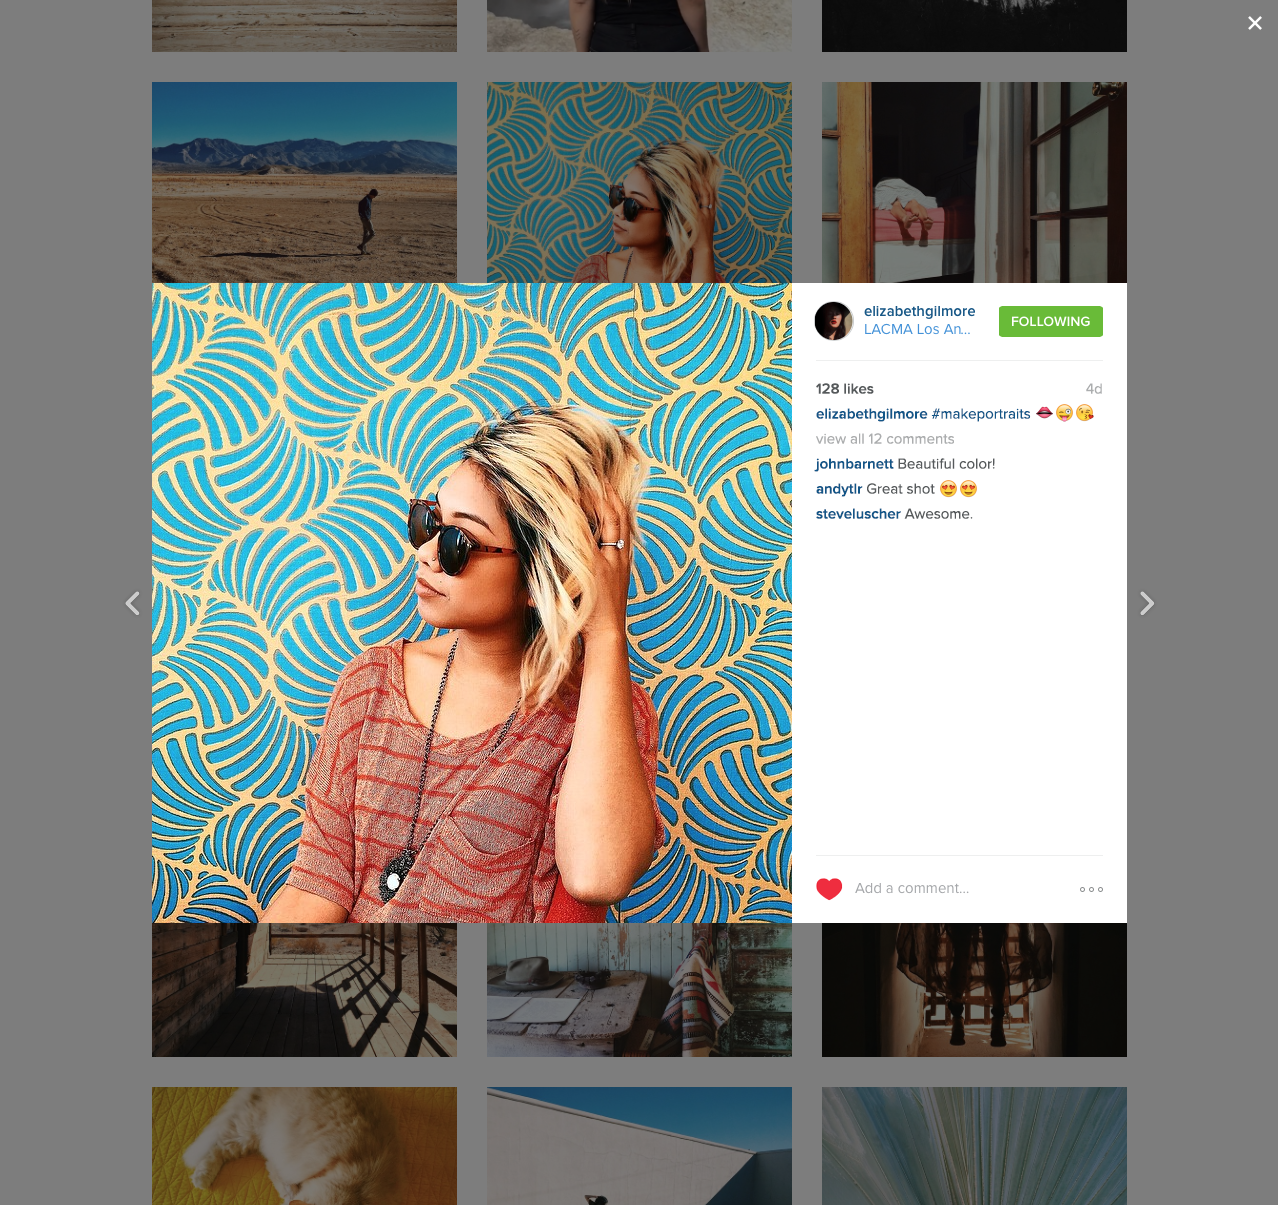 Instagram is launching a redesigned website with bigger photos - The